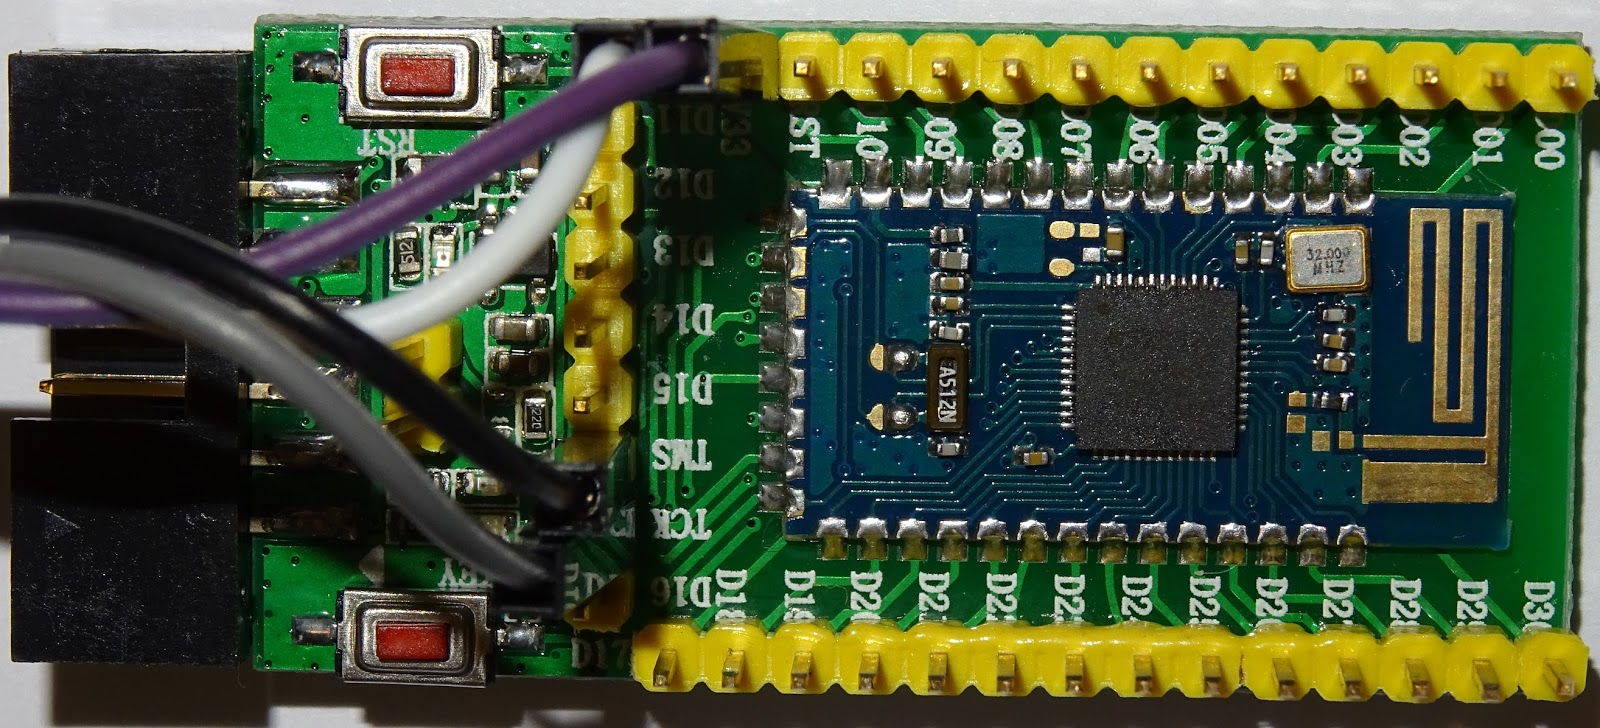 pcbreflux: nRF52832: first steps with ST-Link V2 and openocd